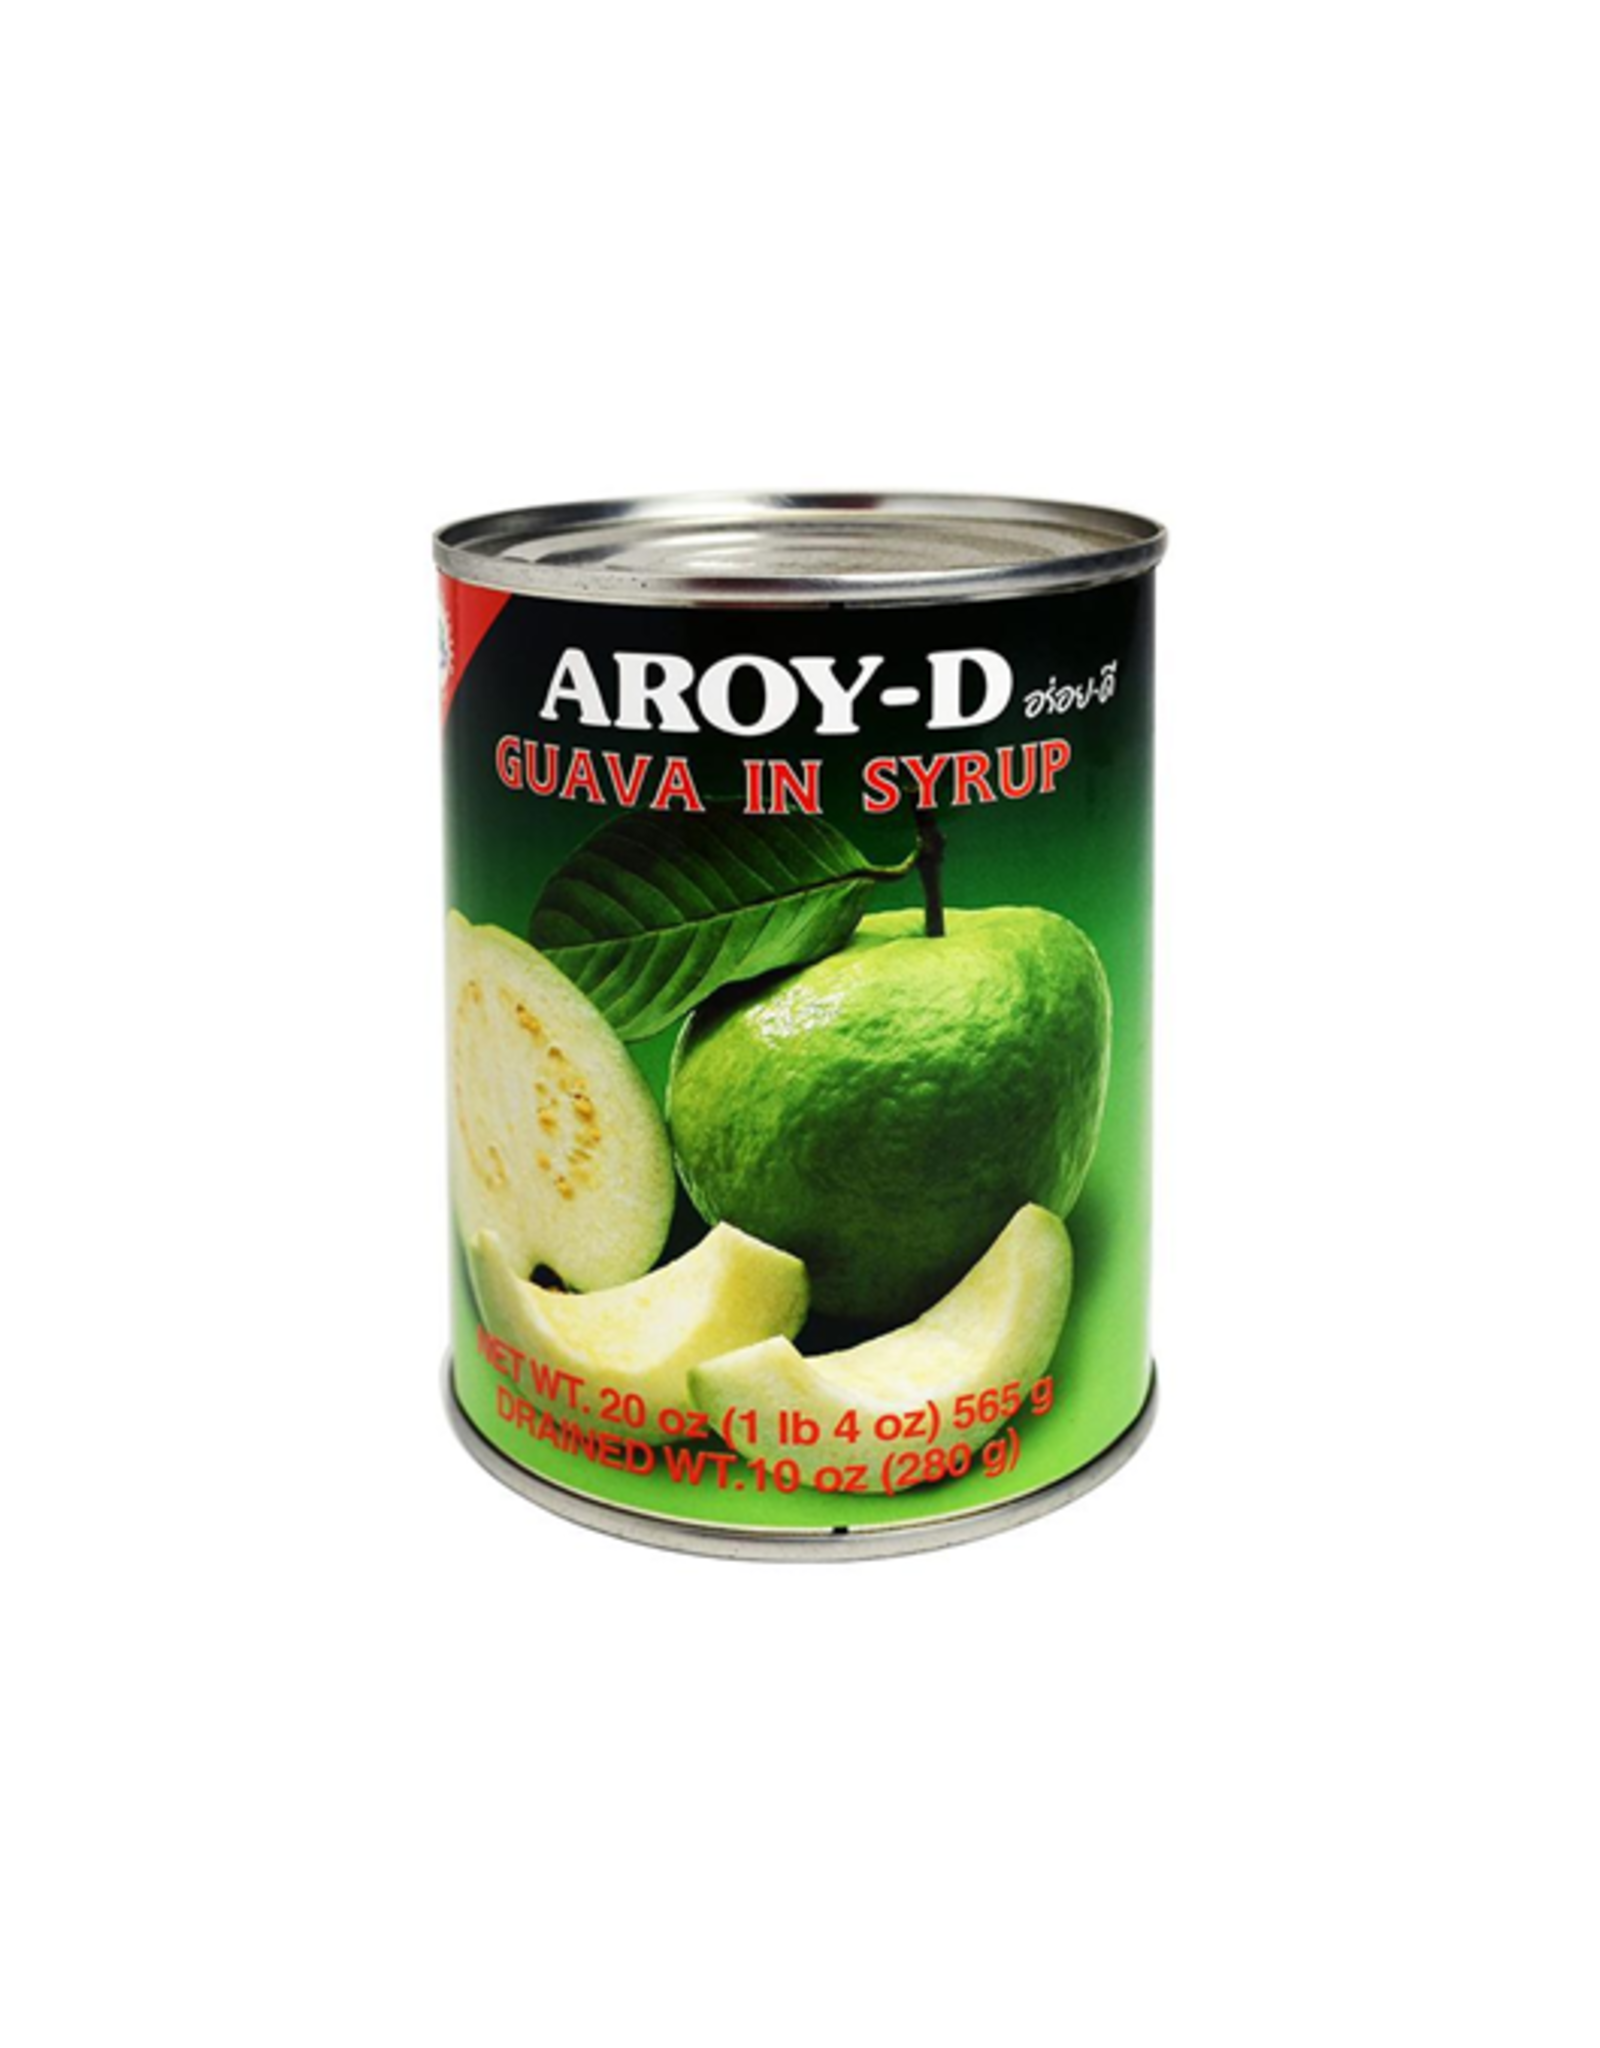 Aroy-D Guava in Syrup